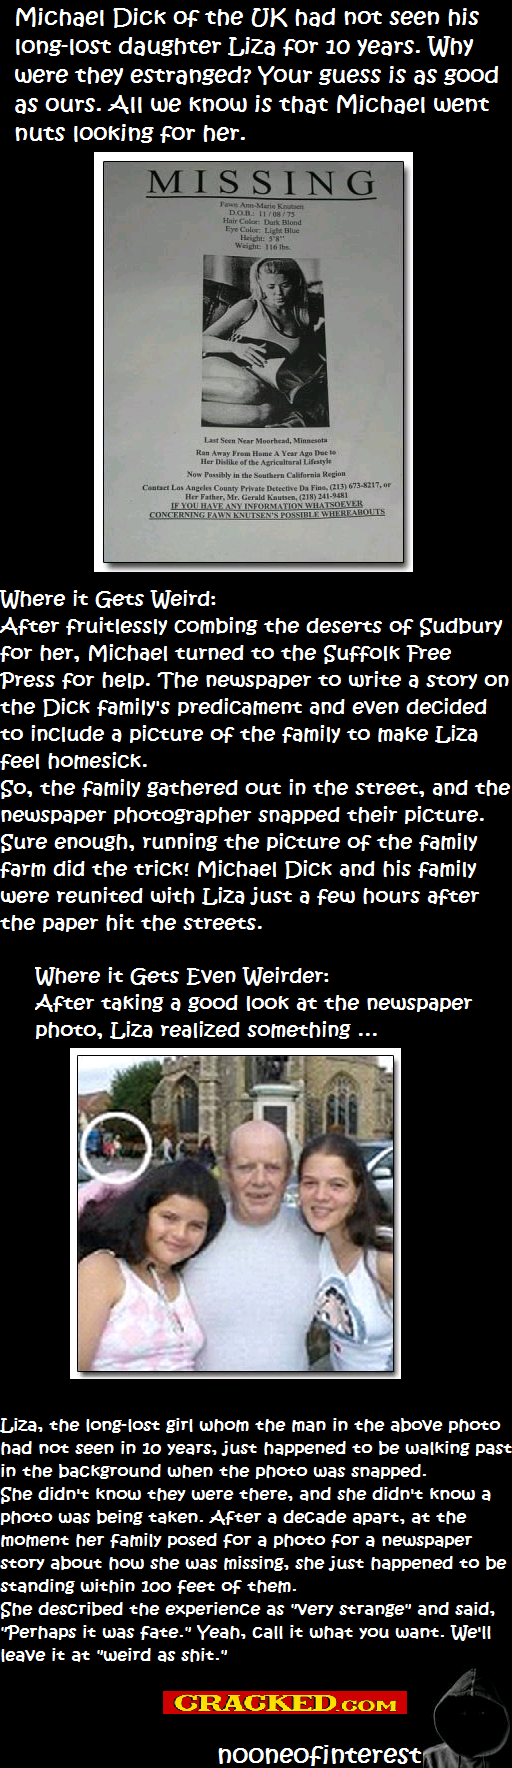 "The family. . Michael Dice of: the UK had not seen his daughter Liza Fnr "" years. Why were they estranged? Your guess is as good as ours. All we is that Michael"